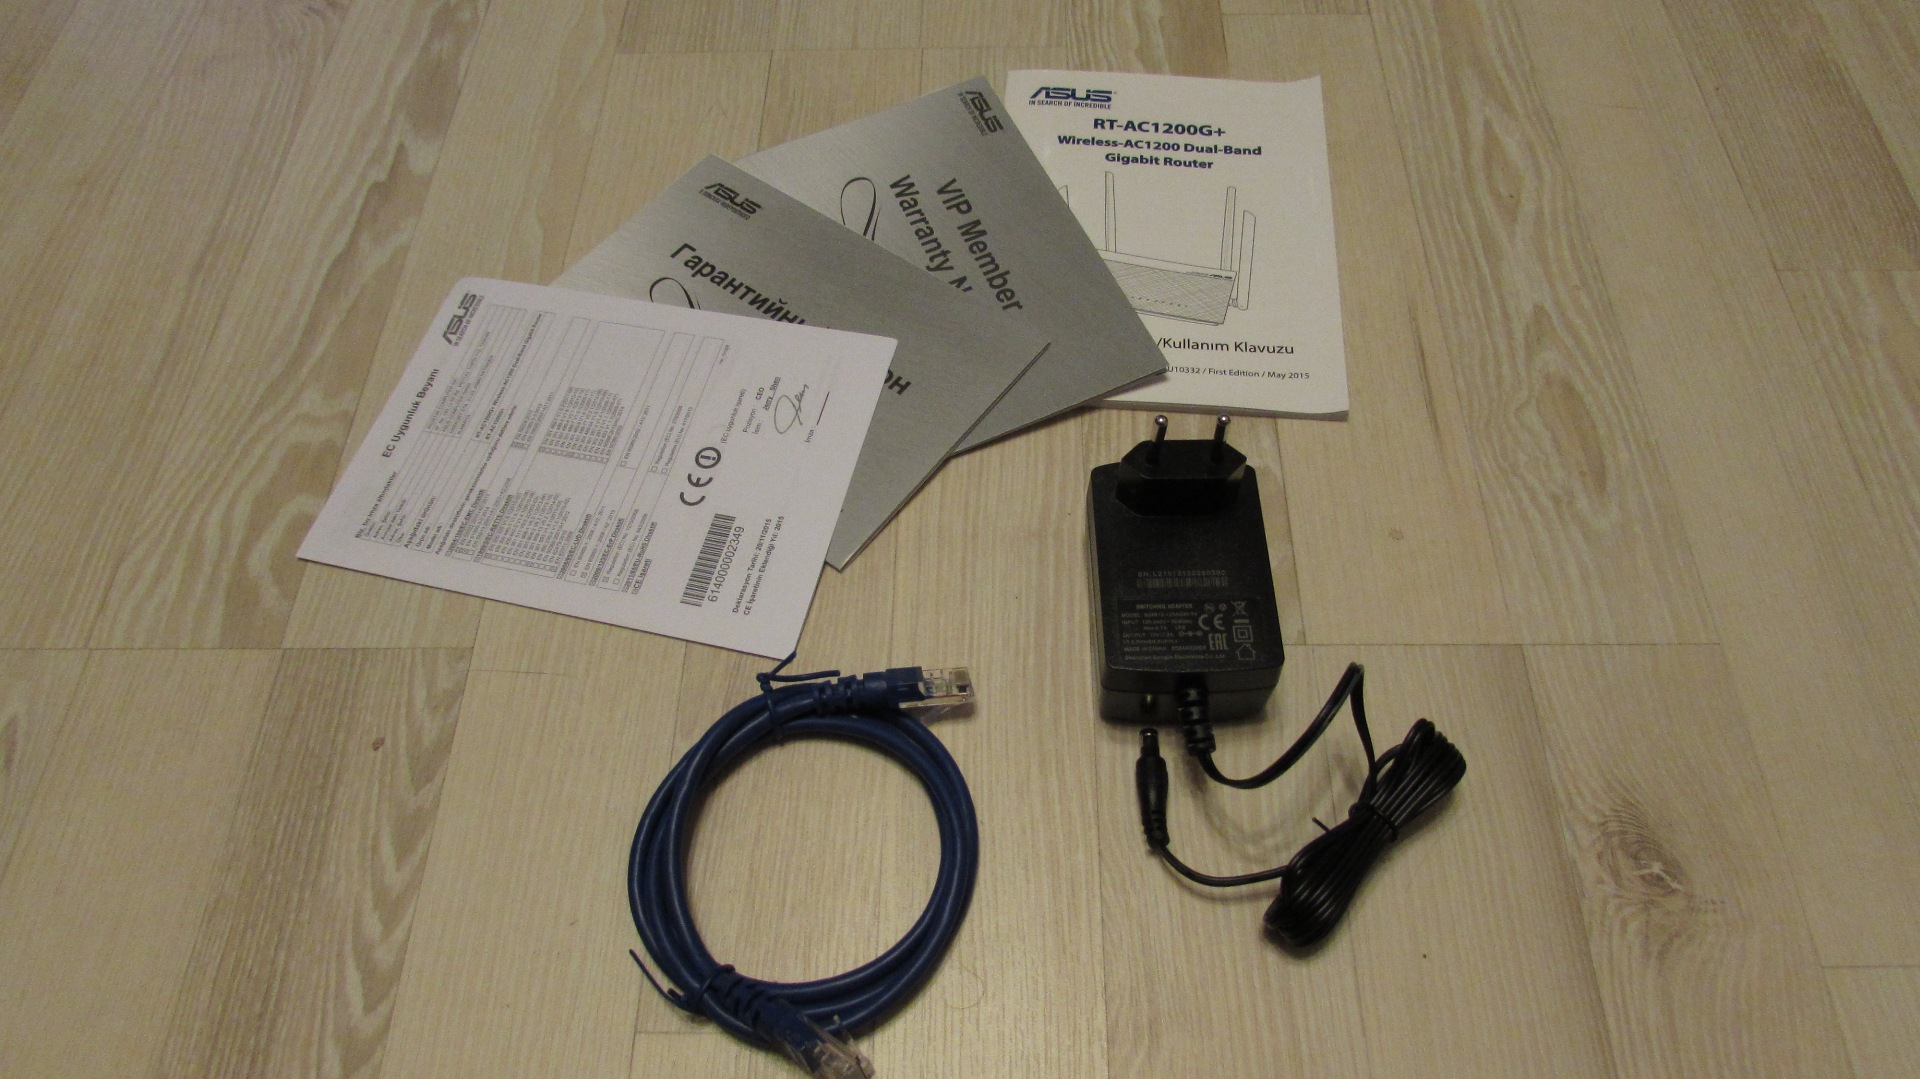 openlinksys.info/images/rt-ac1200g/IMG_0586.JPG